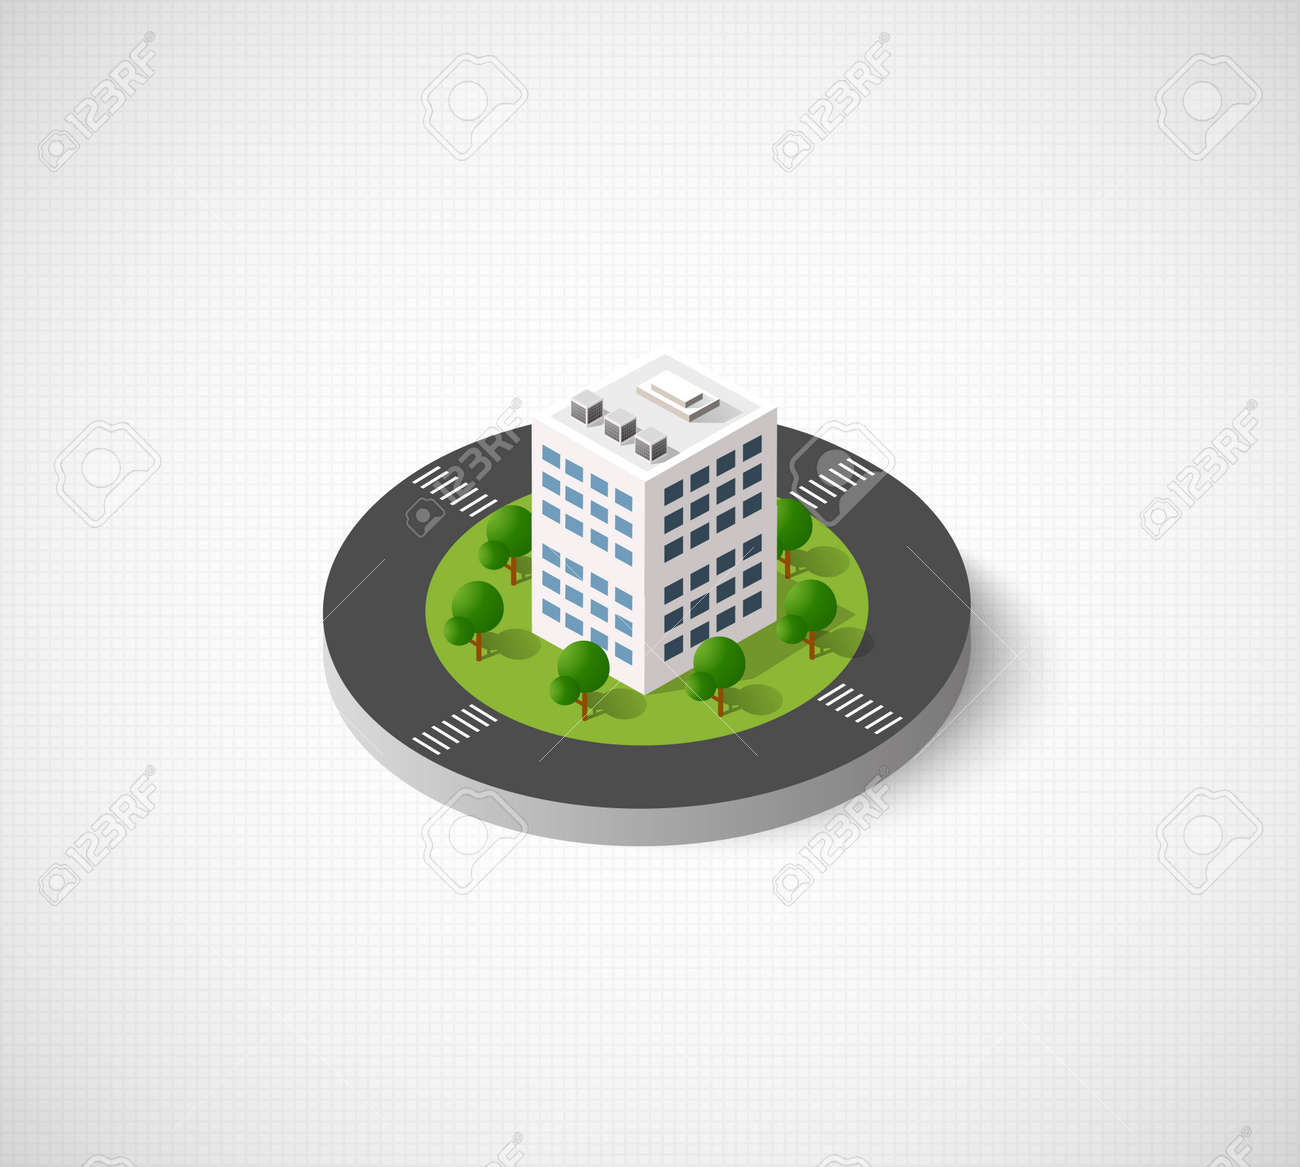 Icon Of The City With Isometric Houses Skyscrapers Streets